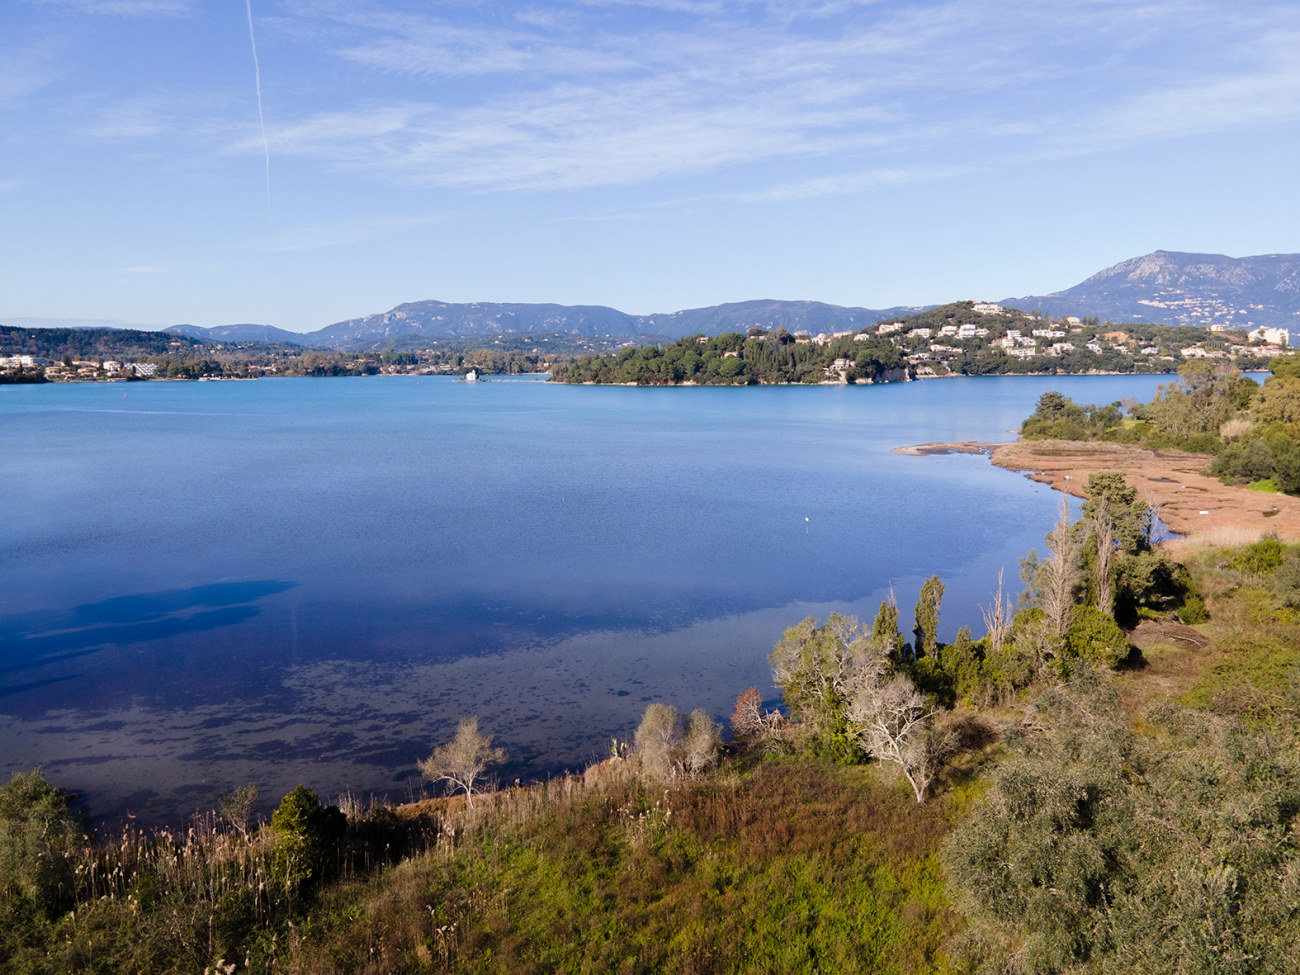 dji-0655-roula-rouva-corfu-real-estate